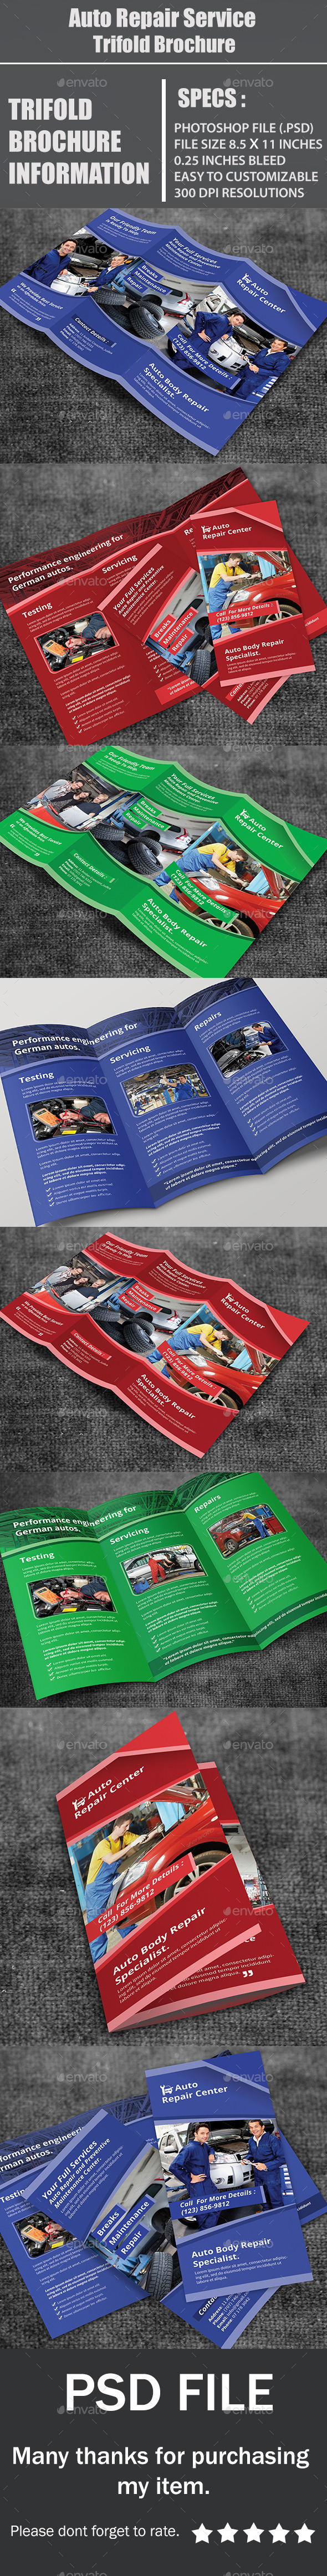 GraphicRiver Auto Repair Service Trifold Brochure 10749745